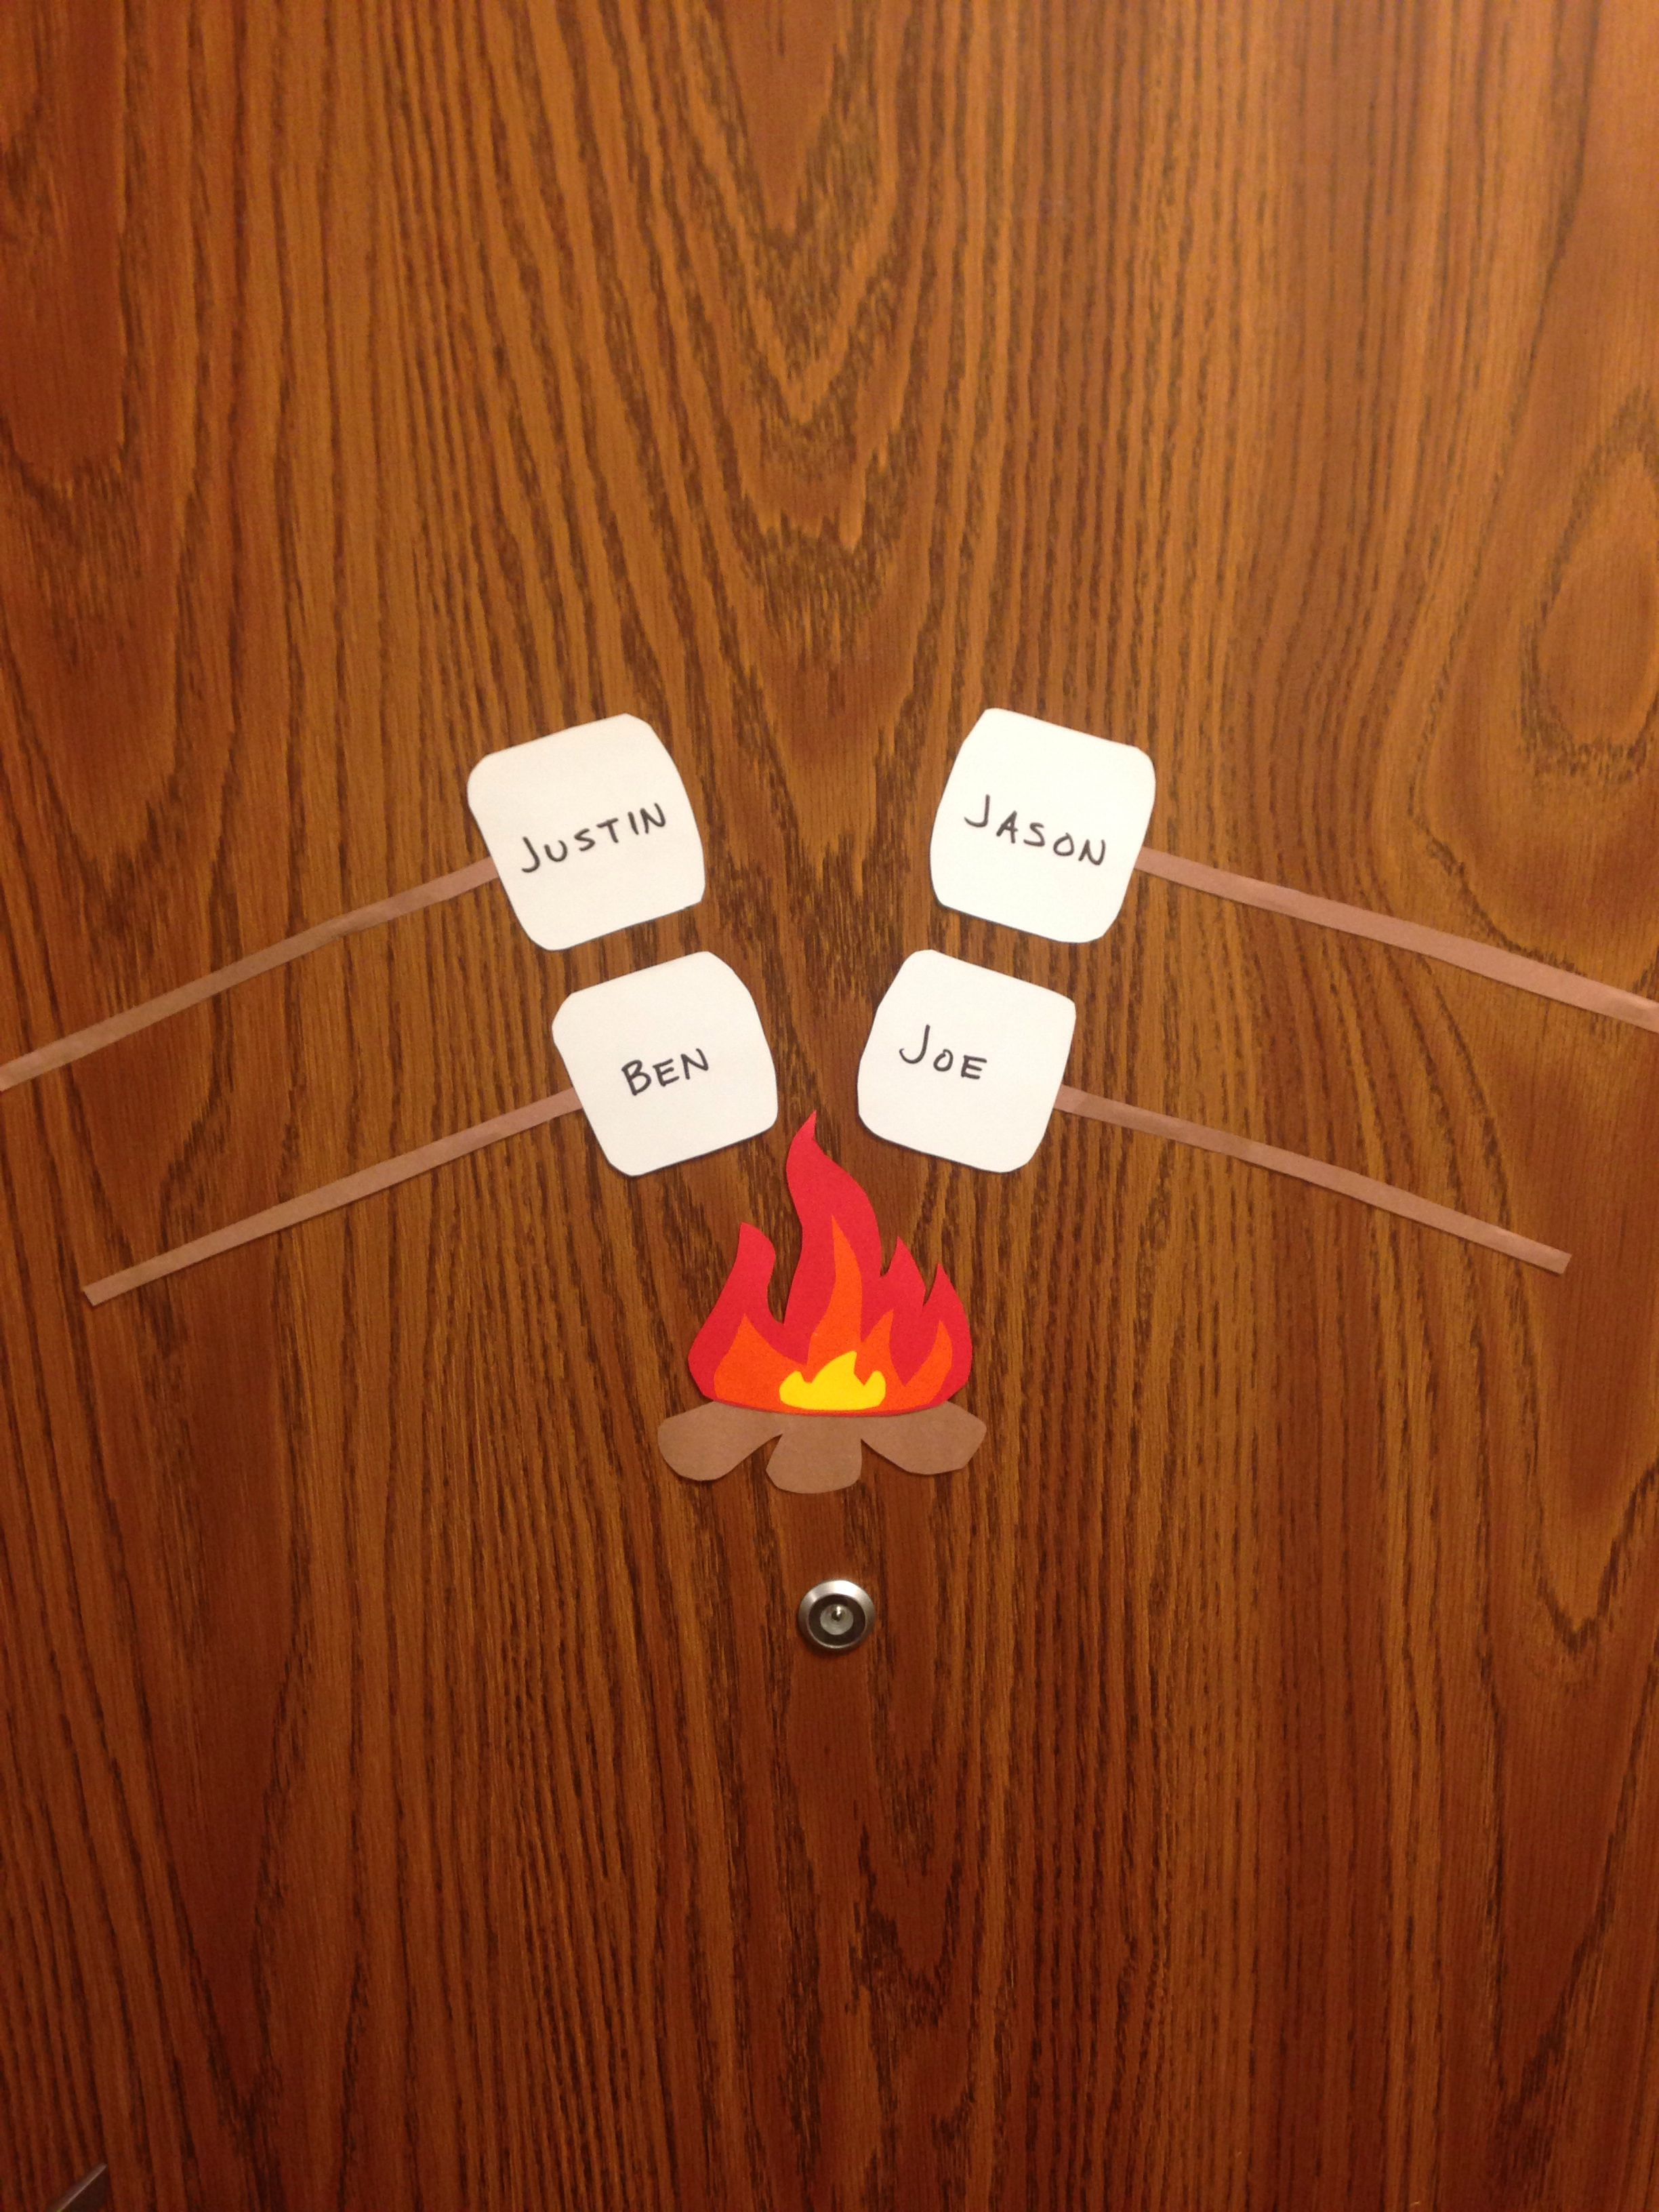 Ra Campfire S More Door Decs For A Guys Floor My Ra Bulletin